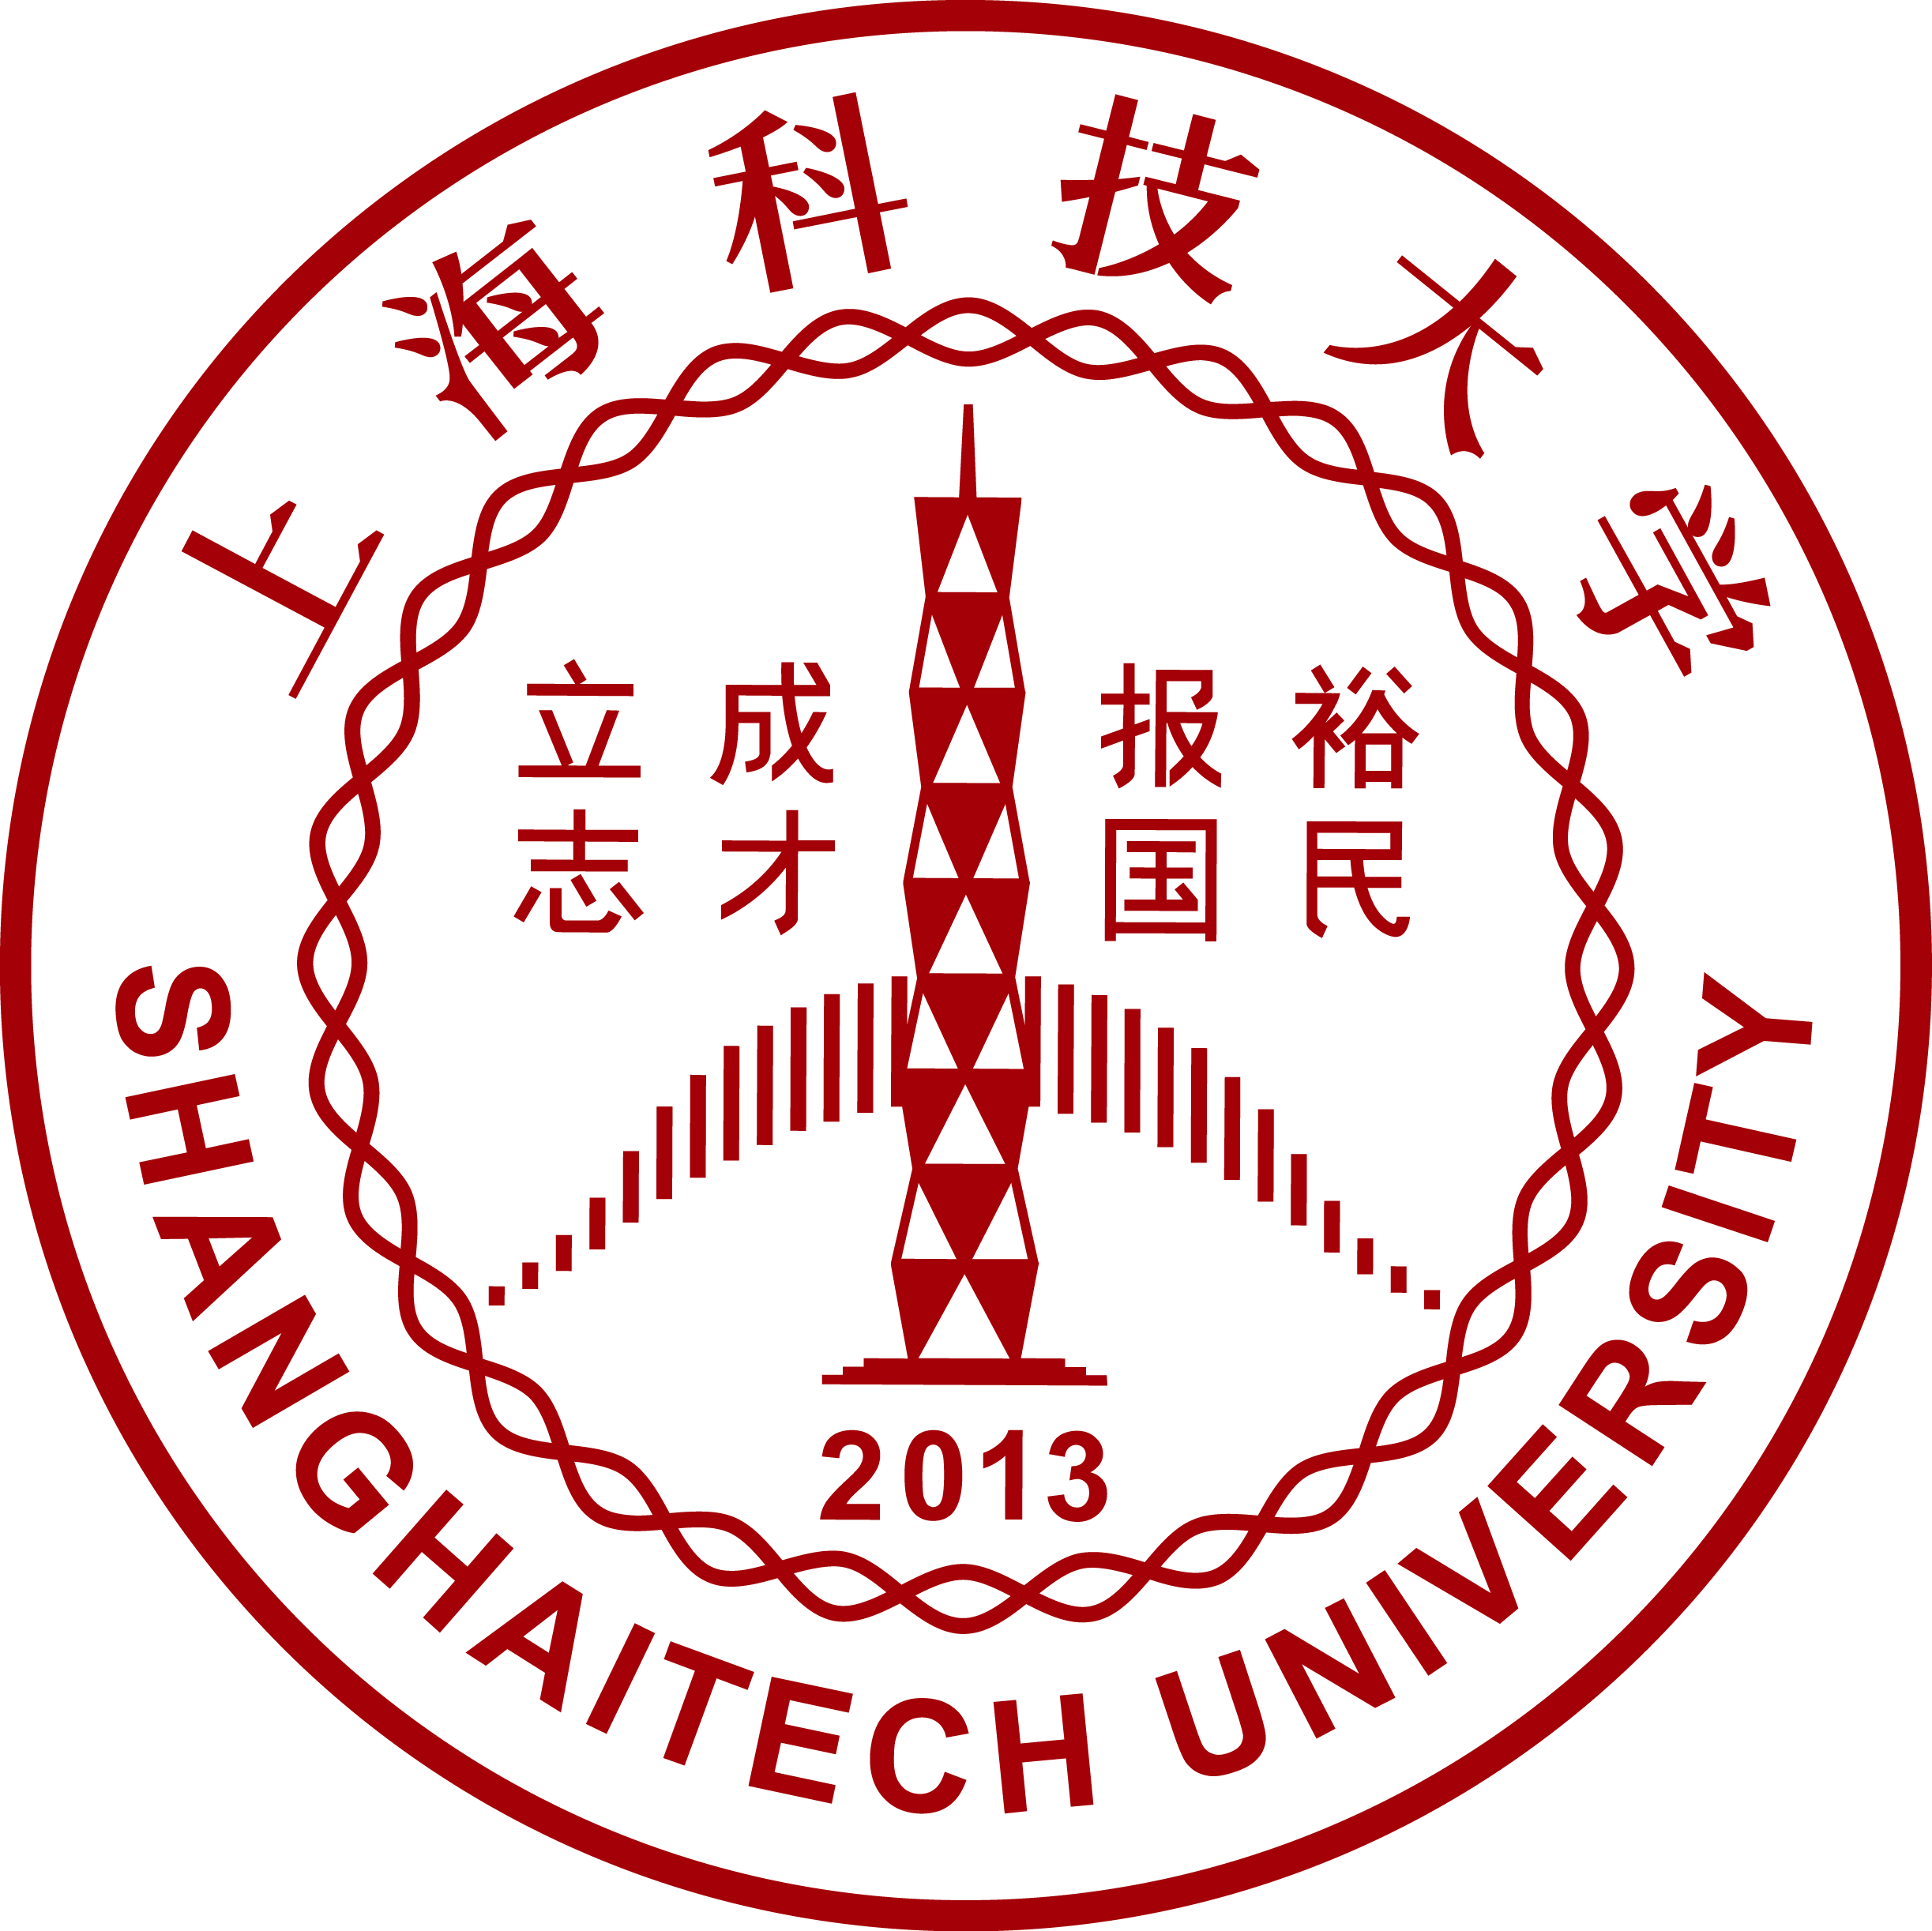 ShanghaiTech Red